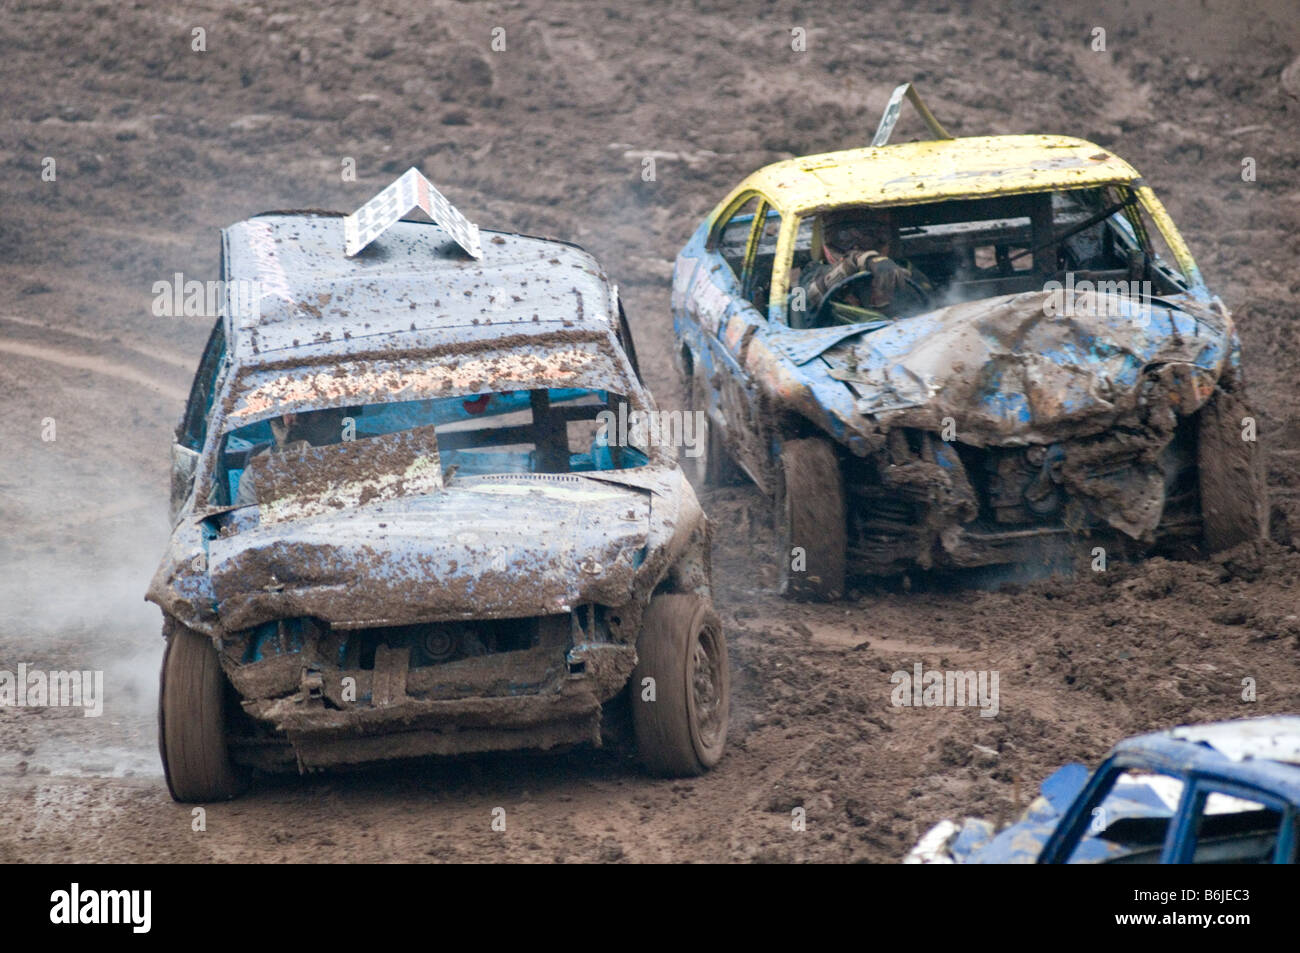 Demolition Derby Stock Photos & Demolition Derby Stock Images - Alamy